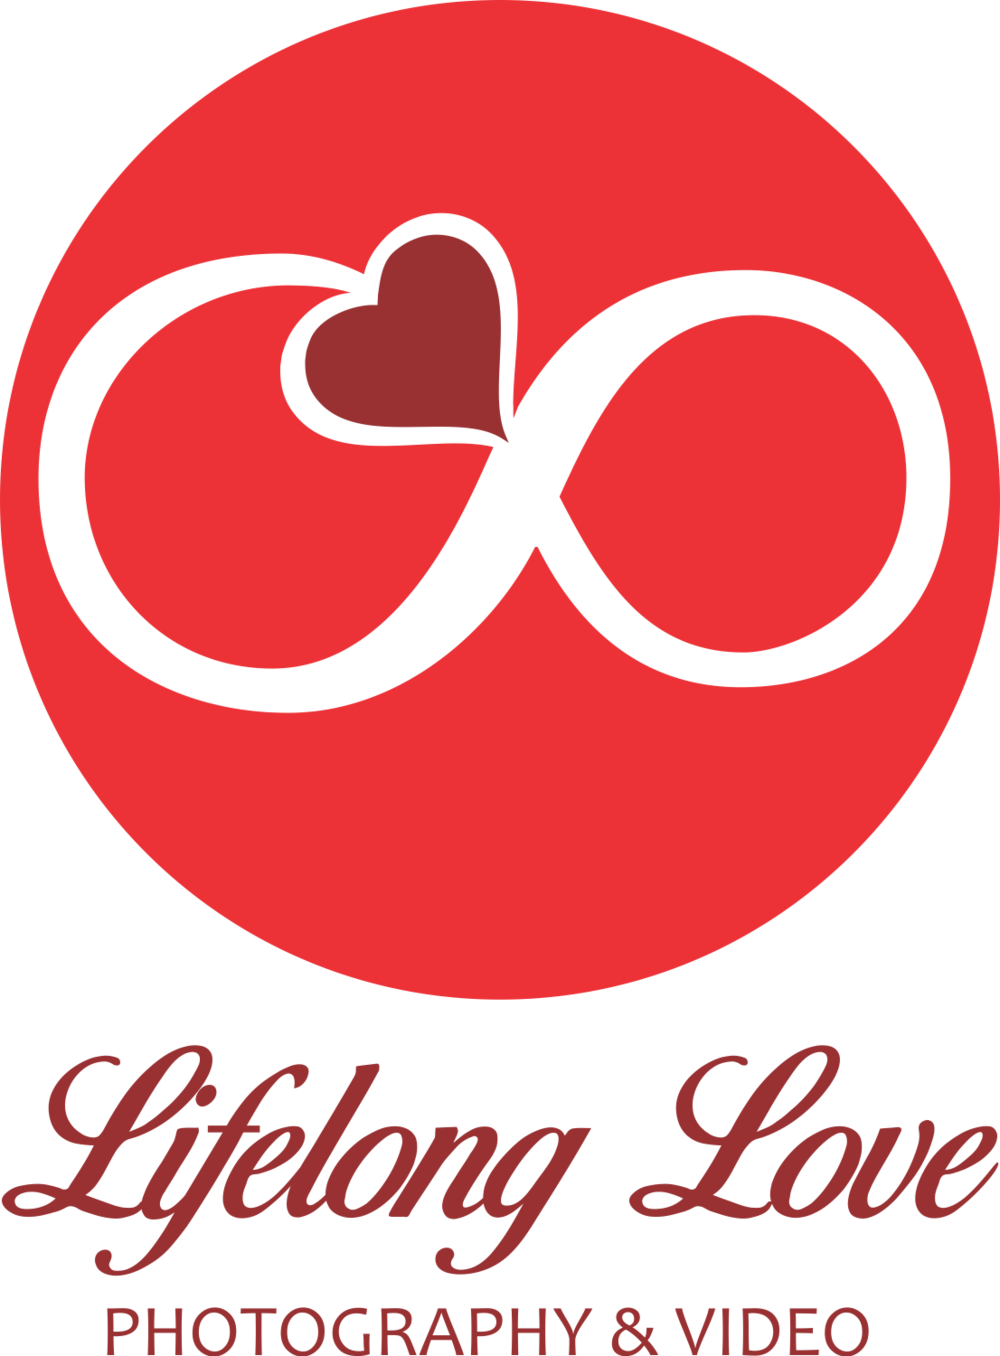 Lifelong Love Photography and video LOGO - Vertical.png